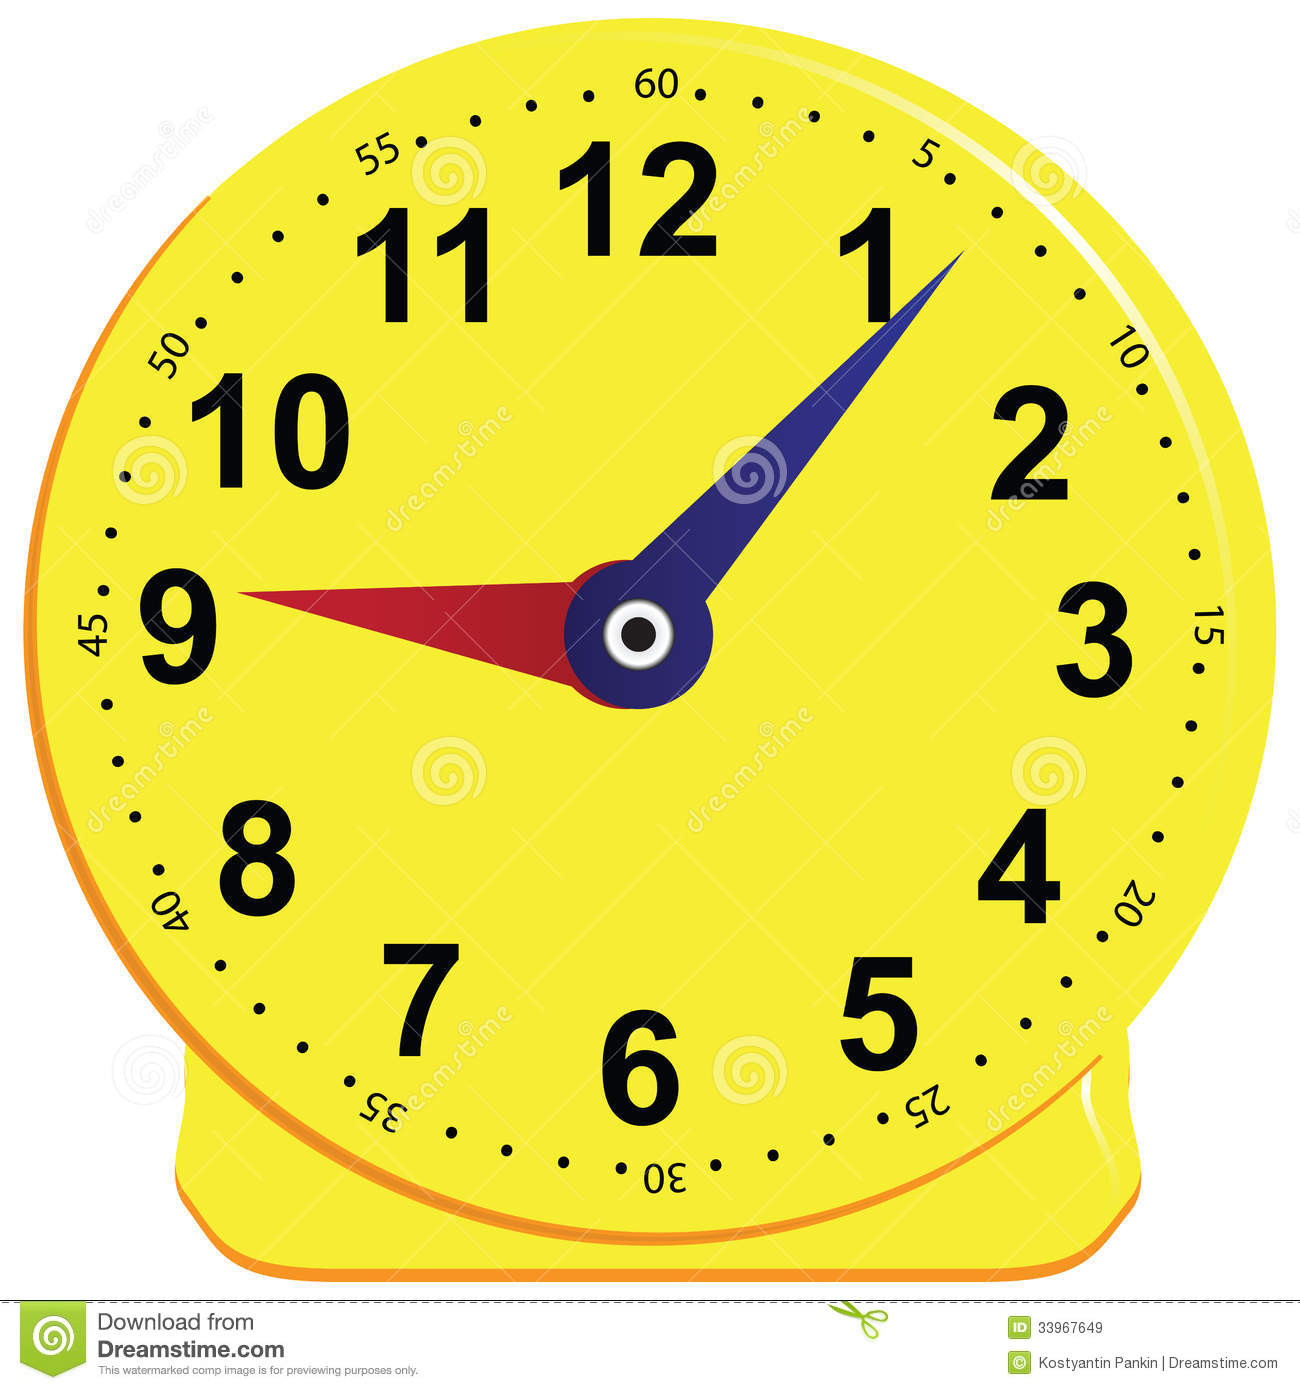 Yellow Time Teaching Clock Stock Images - Image: 29662354